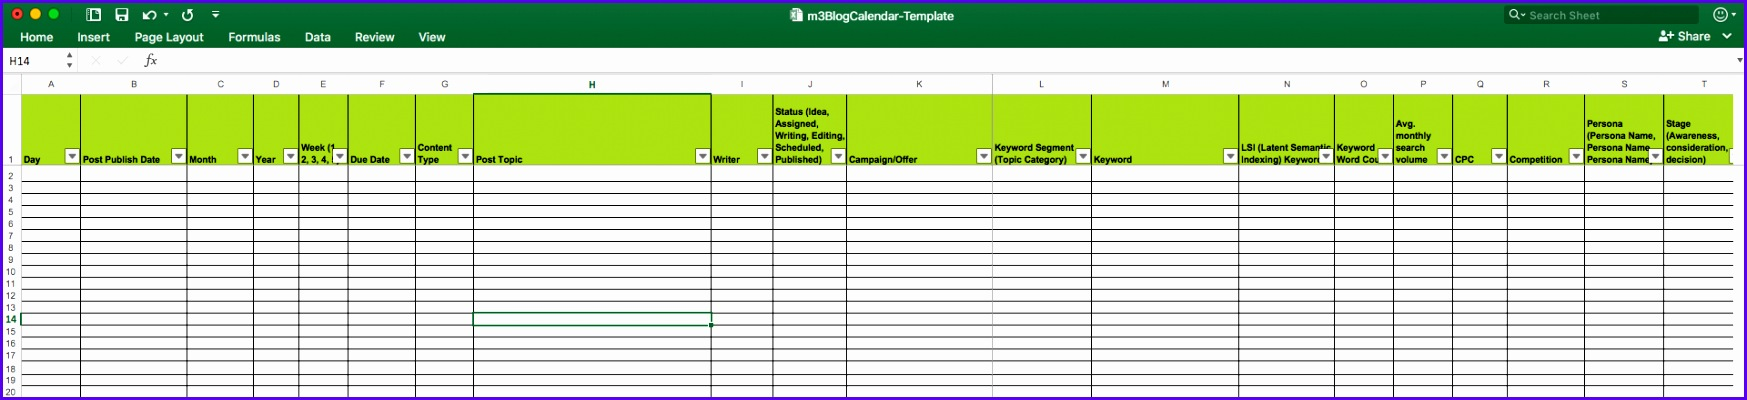 monthly editorial calendar template - 8 monthly planner excel template exceltemplates